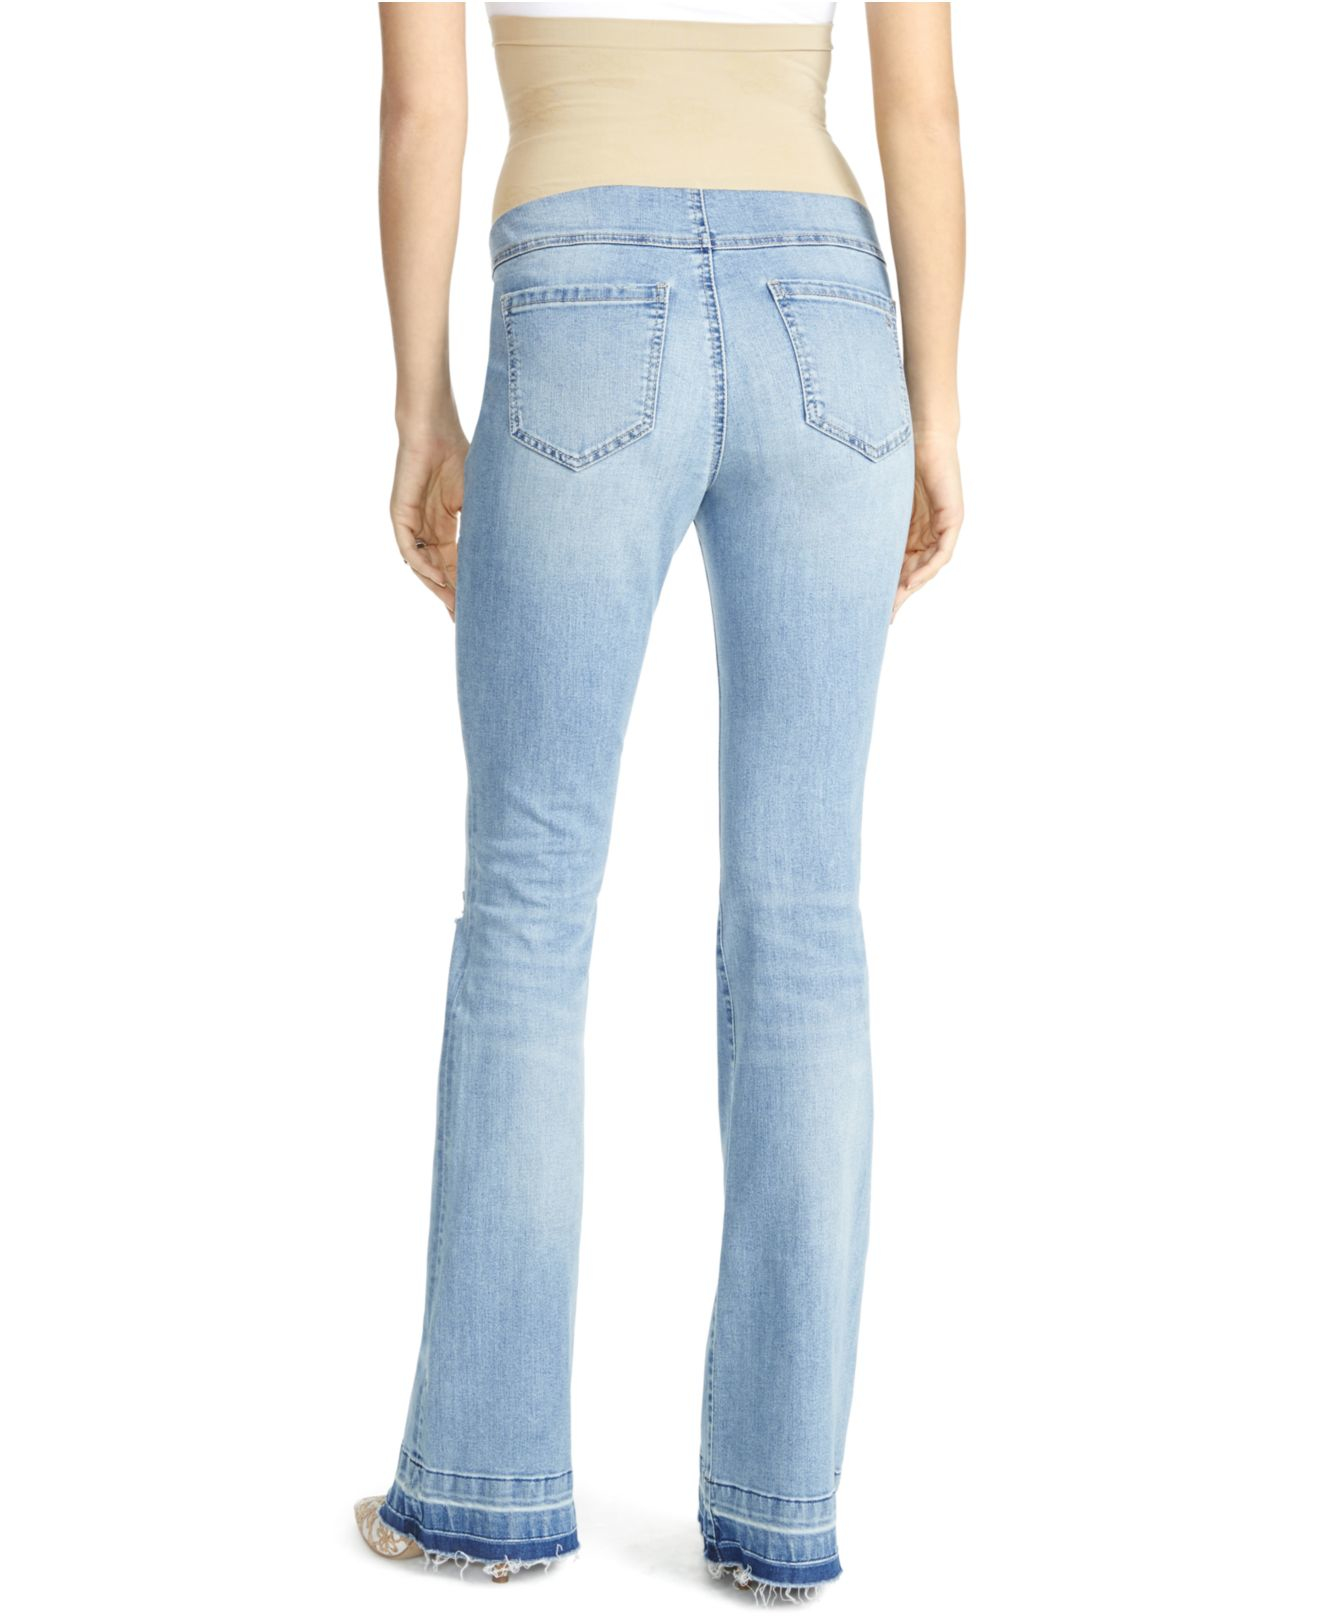 d1c88507e3044 Lyst - Jessica Simpson Maternity Flared Jeans in Blue